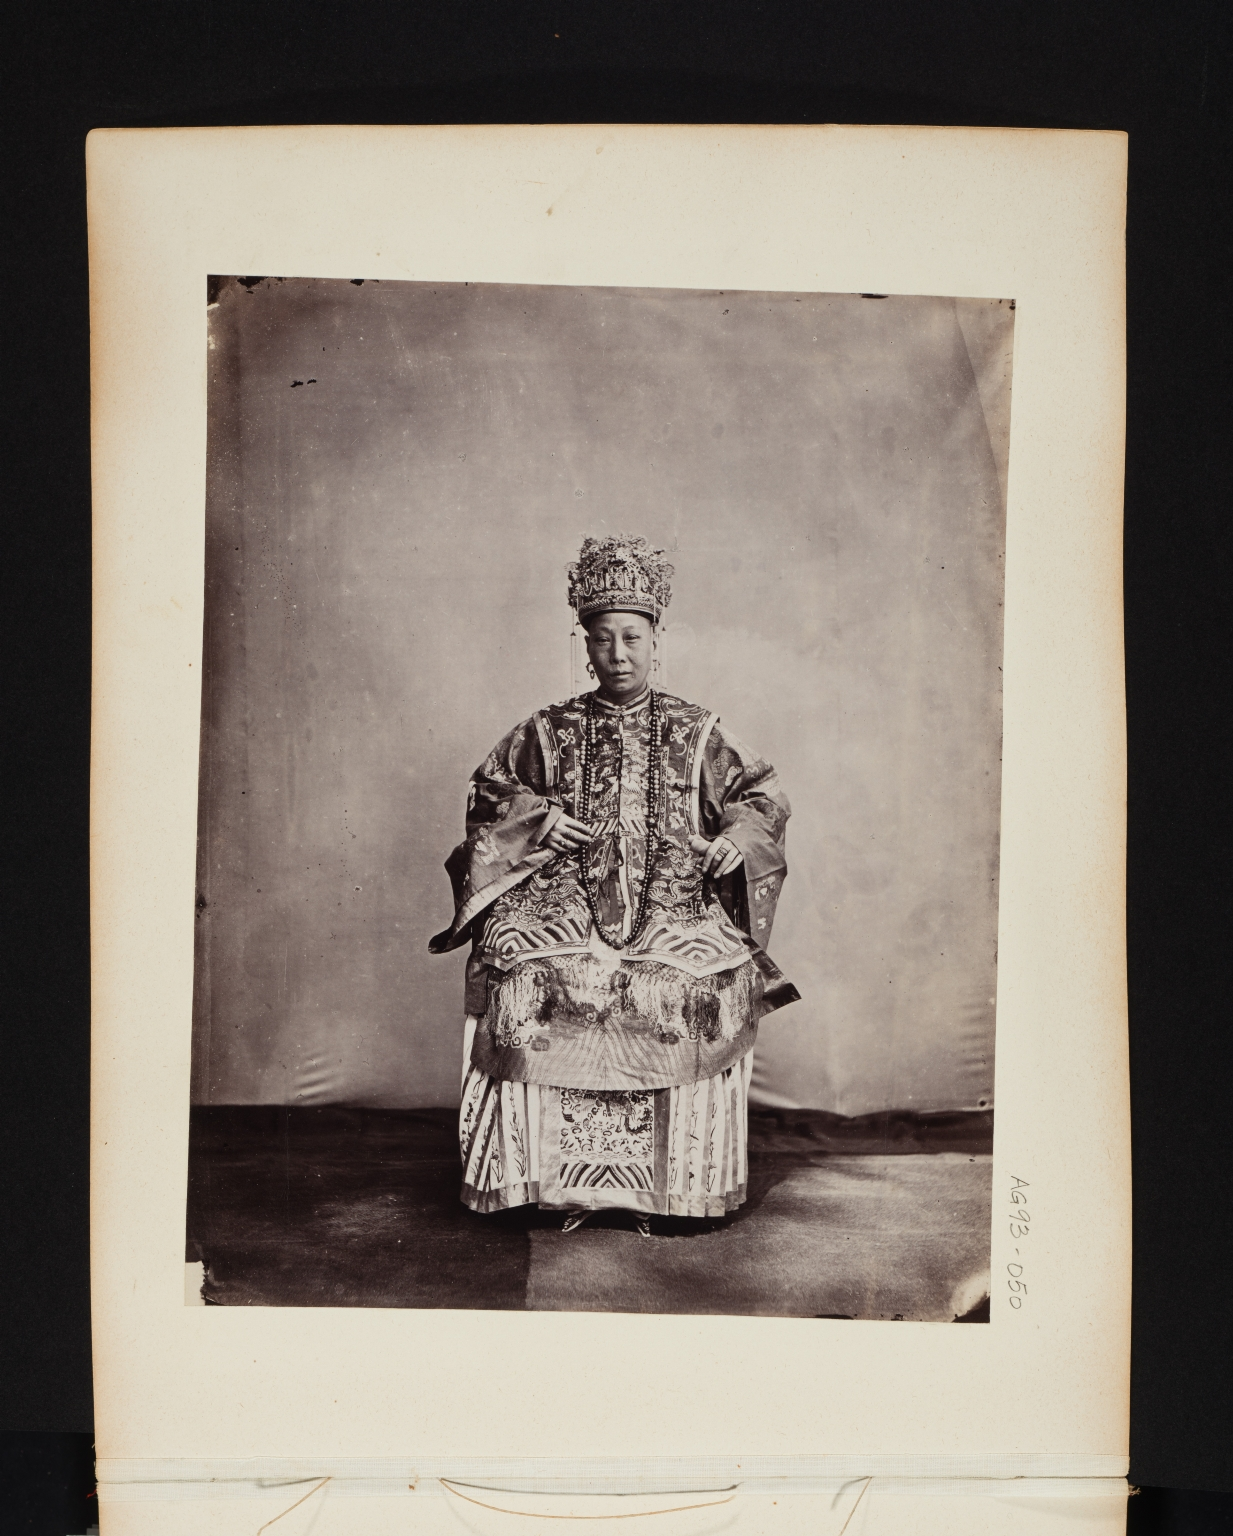 Portrait of a Chinese with elaborate robes and a crown.